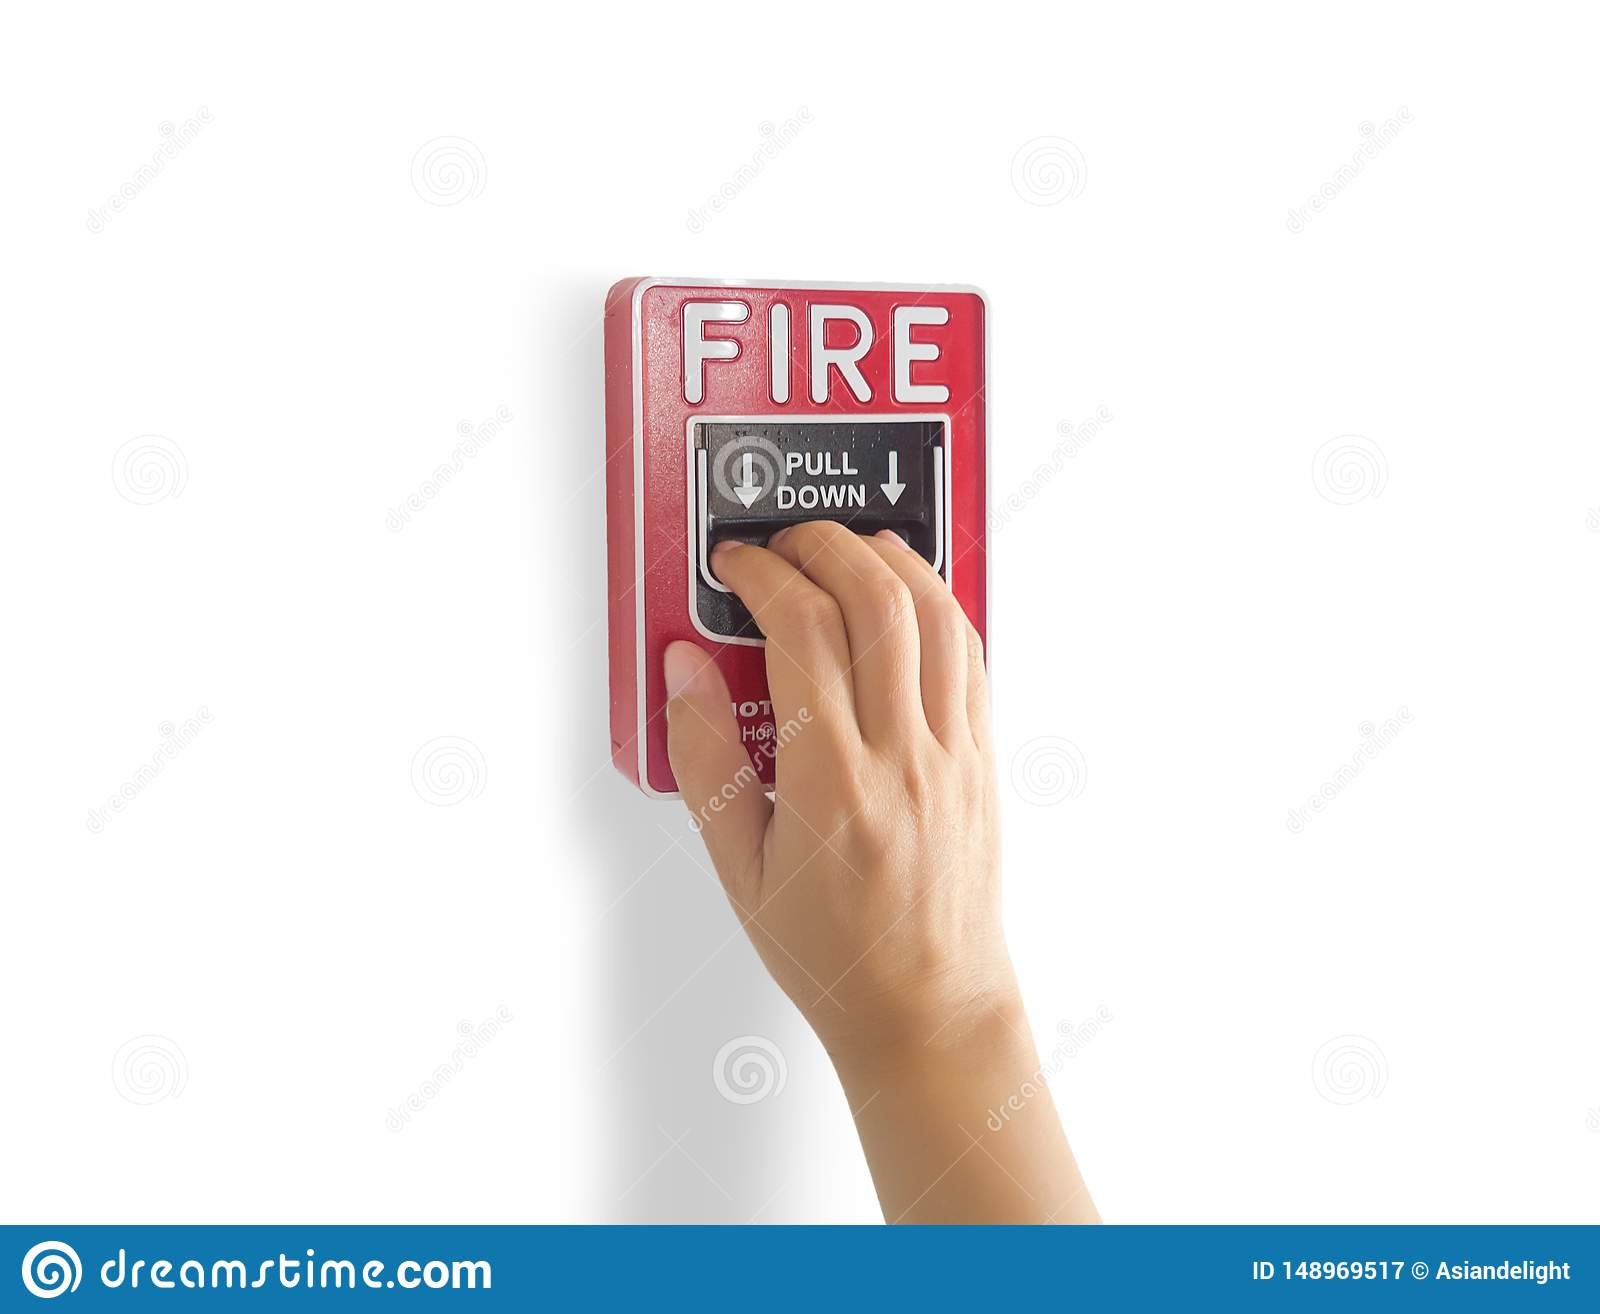 Fire alarm notification appliance, hand pull down fire alarm system switch on the wall by manual for making a loud noise